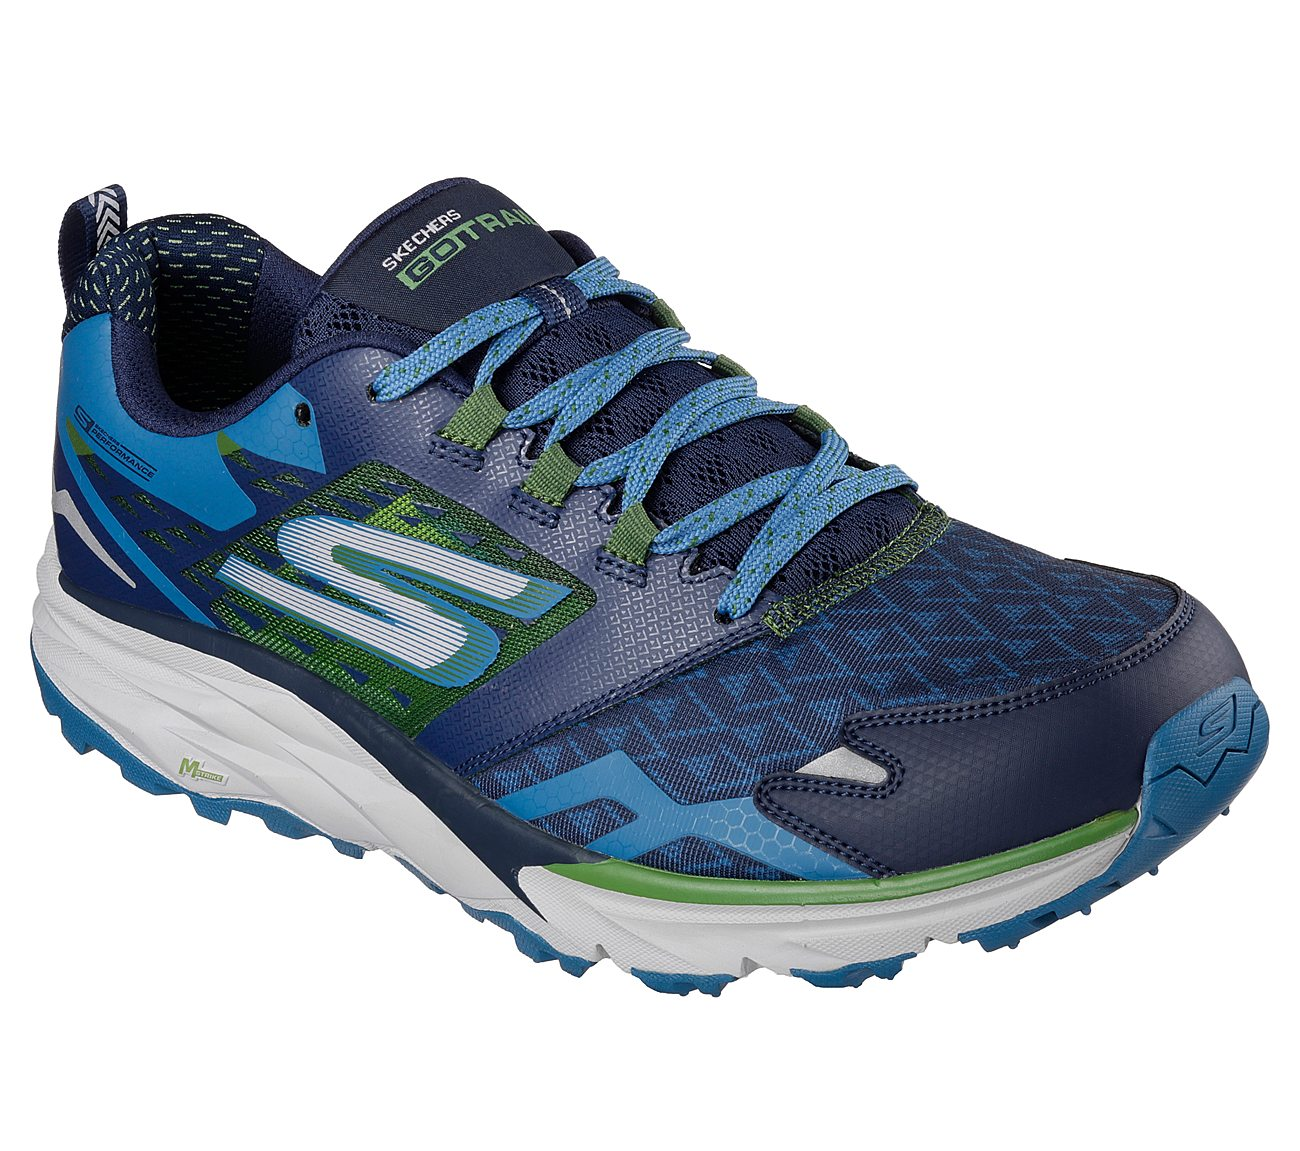 Skechers GOtrail Skechers Performance Shoes